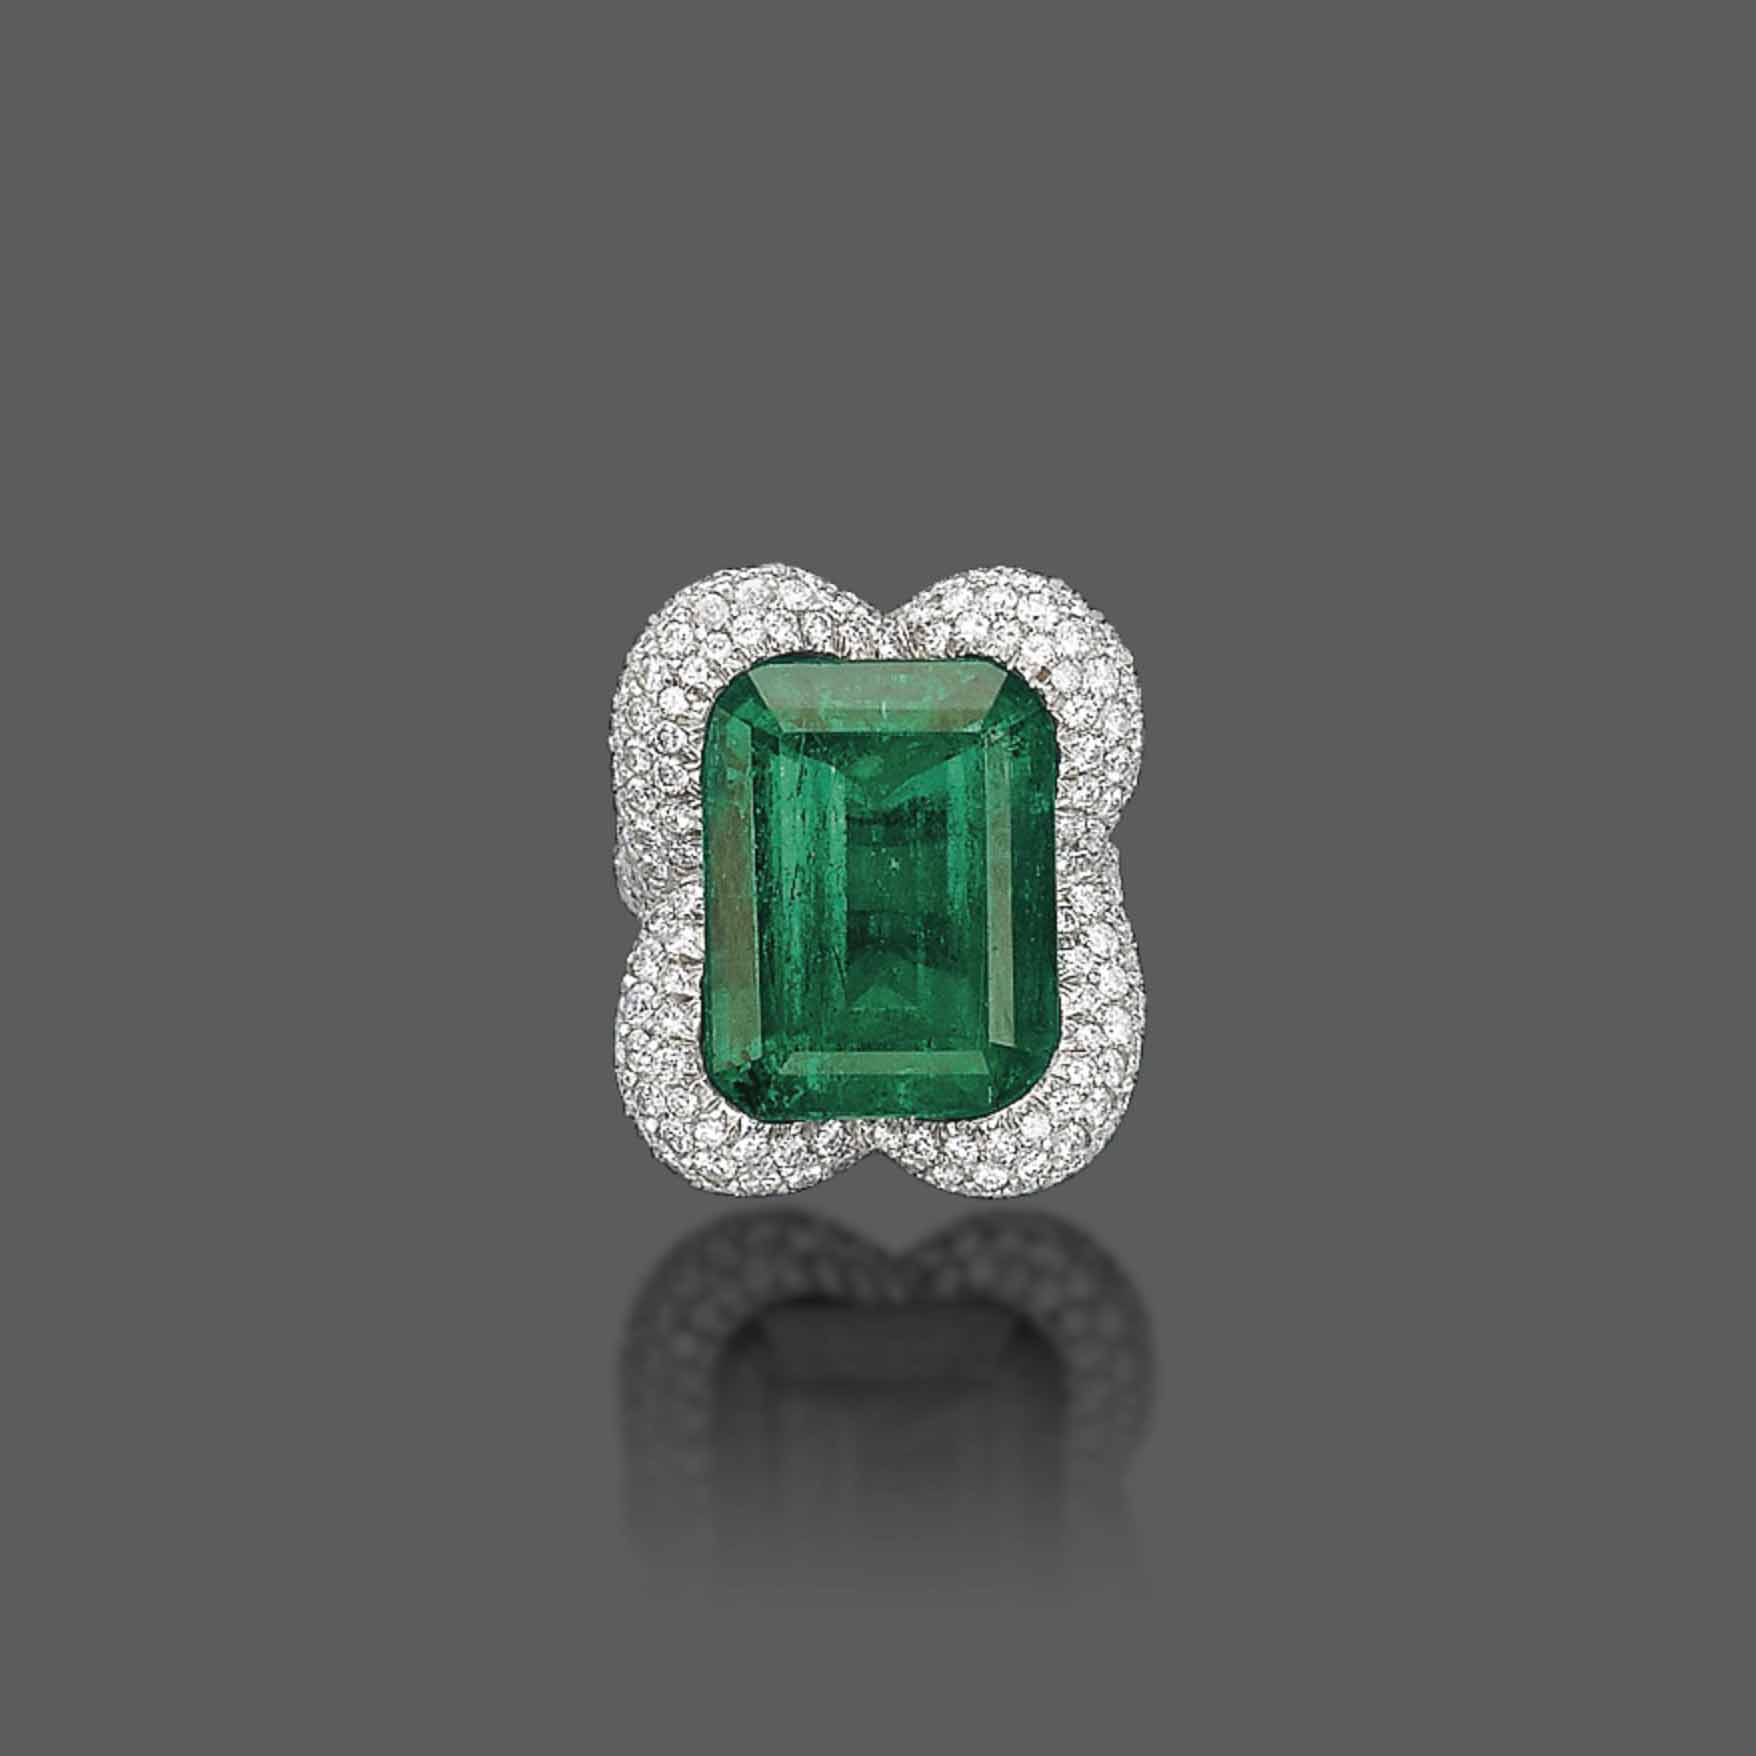 AN EMERALD AND DIAMOND RING, BY VERDURA